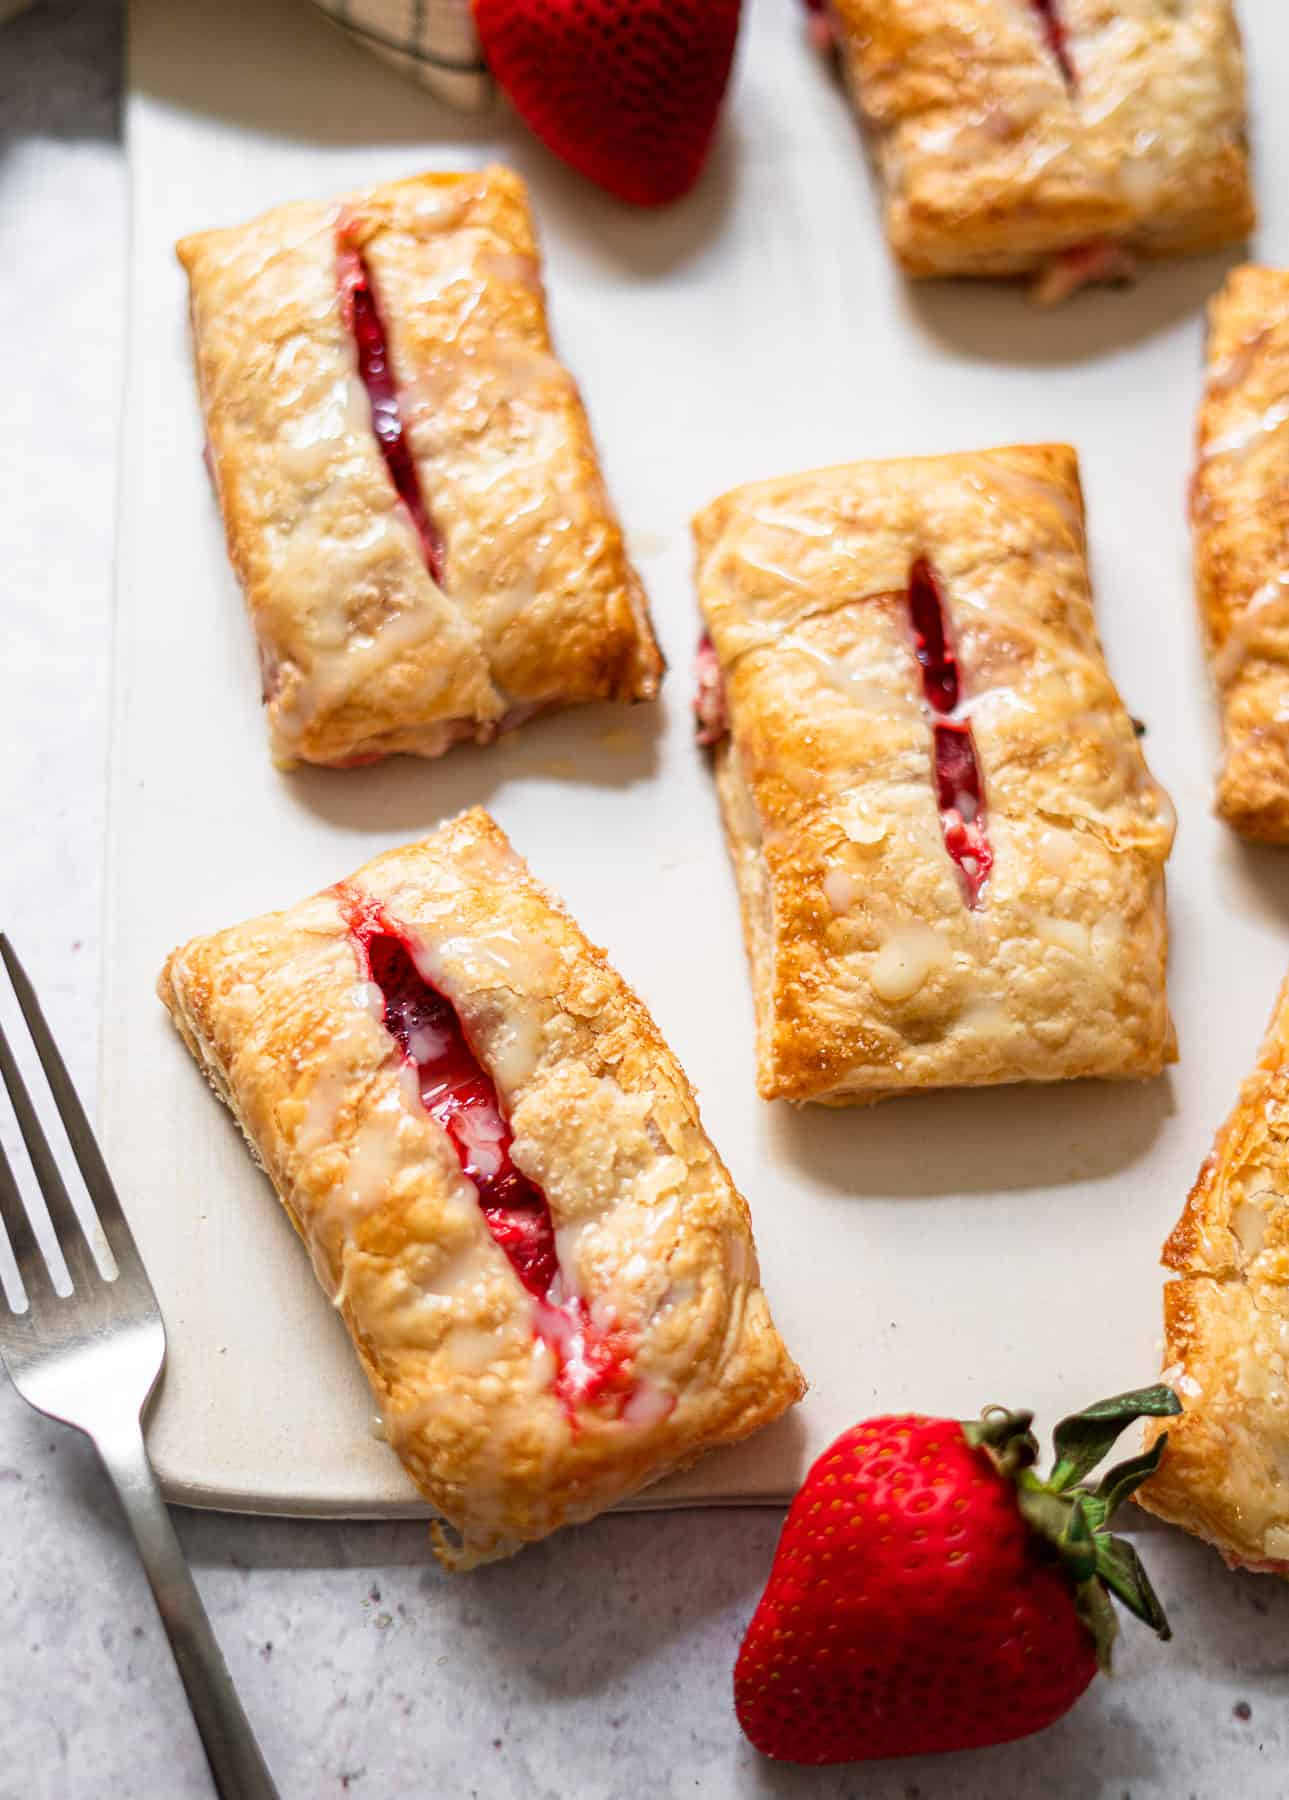 strawberry and cream cheese turnovers on a white board with fresh strawberries and a fork